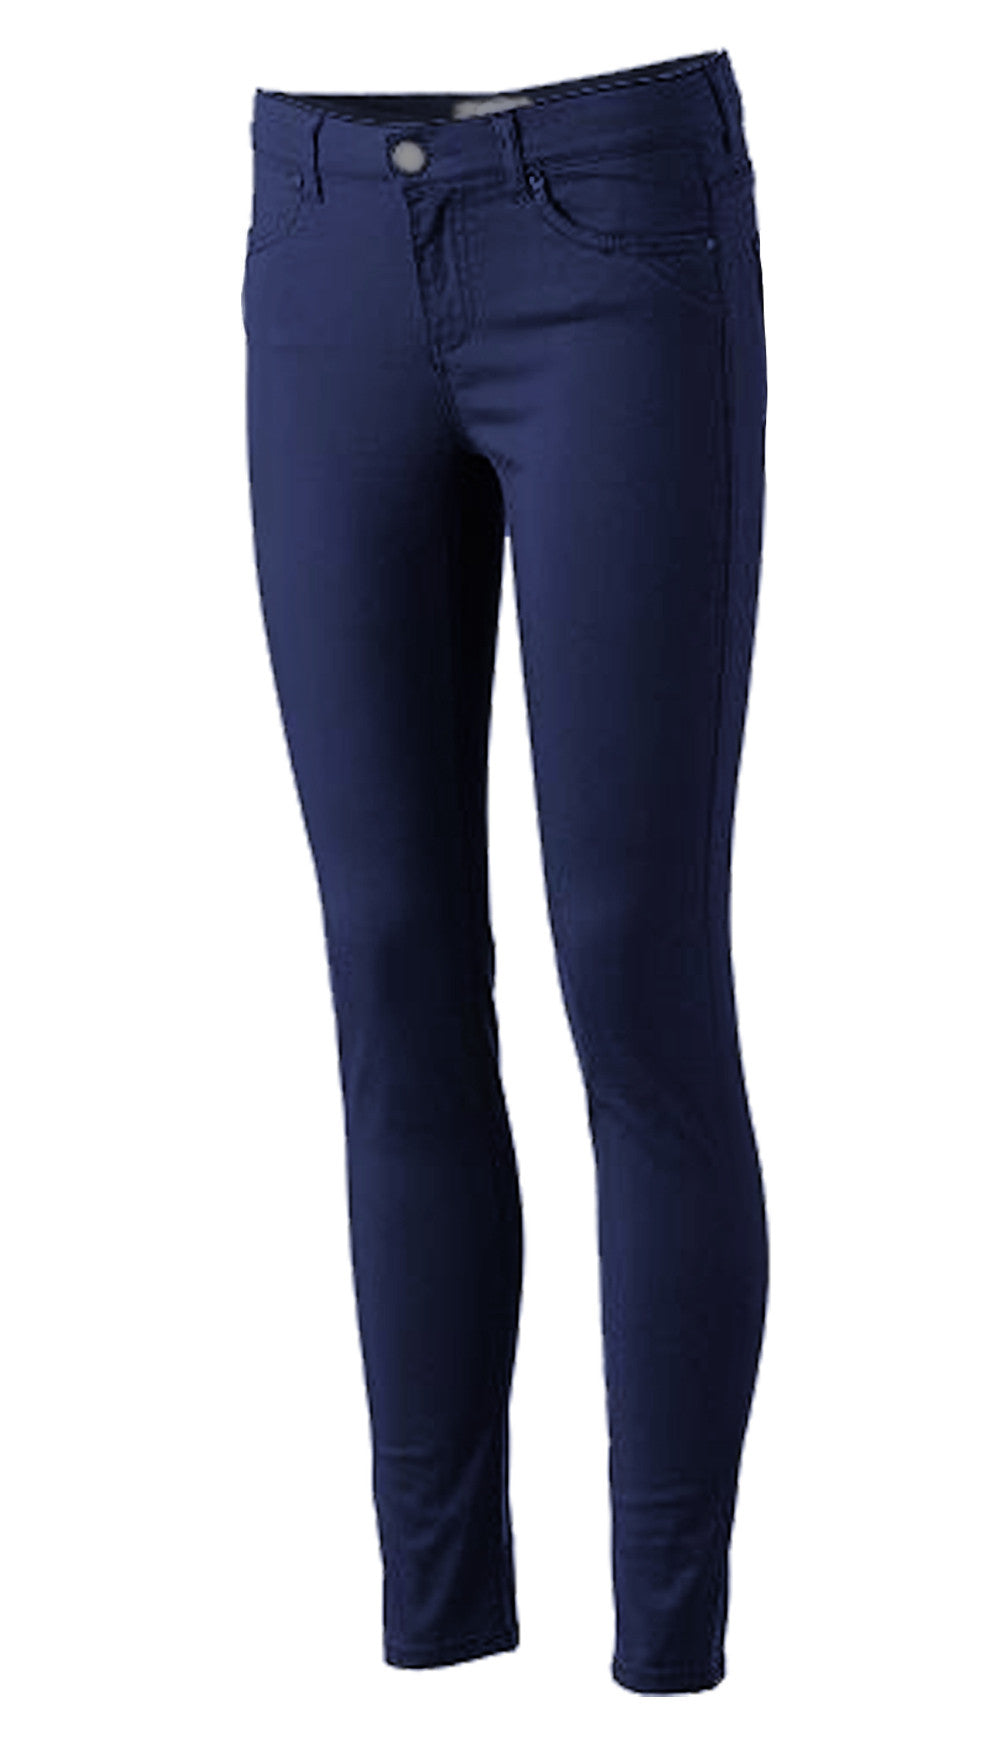 Girls Skinny Pants P80 - Pro 5 Apparel